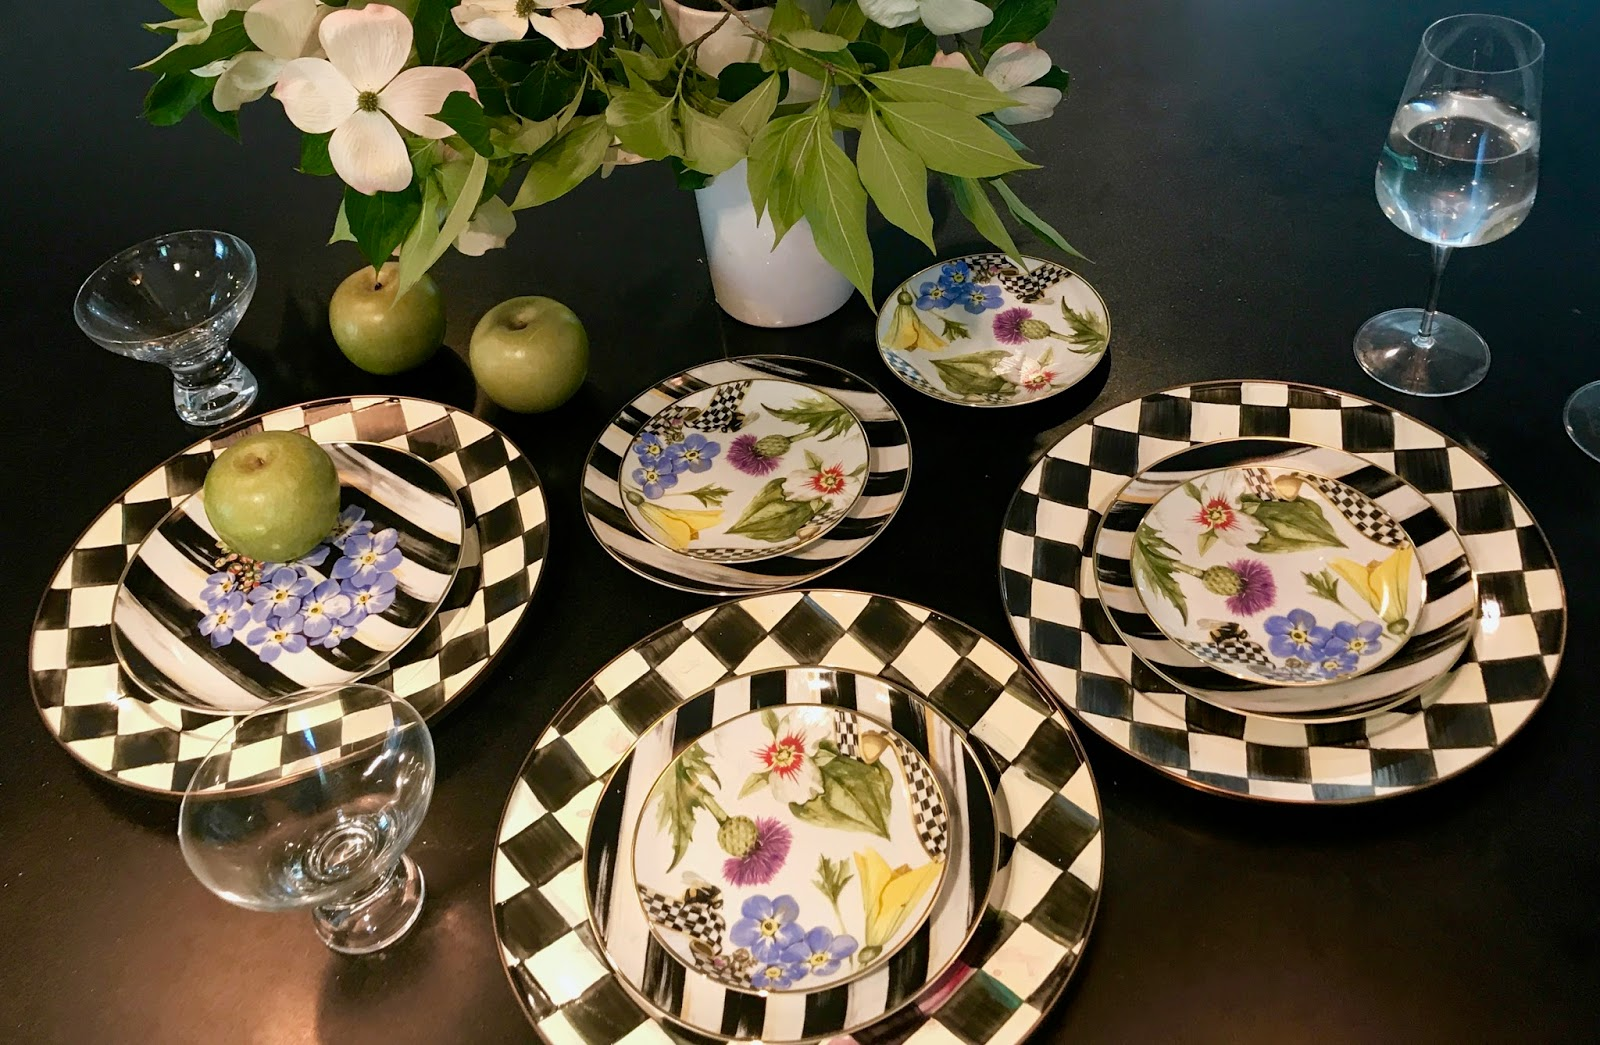 My fatheru0027s wife had given me the iconic Courtly Check tea kettle for Christmas this year so I was really excited to receive the matching plate chargers. & The Most Beautiful Dinnerware and More From MacKenzie-Childs Summer ...